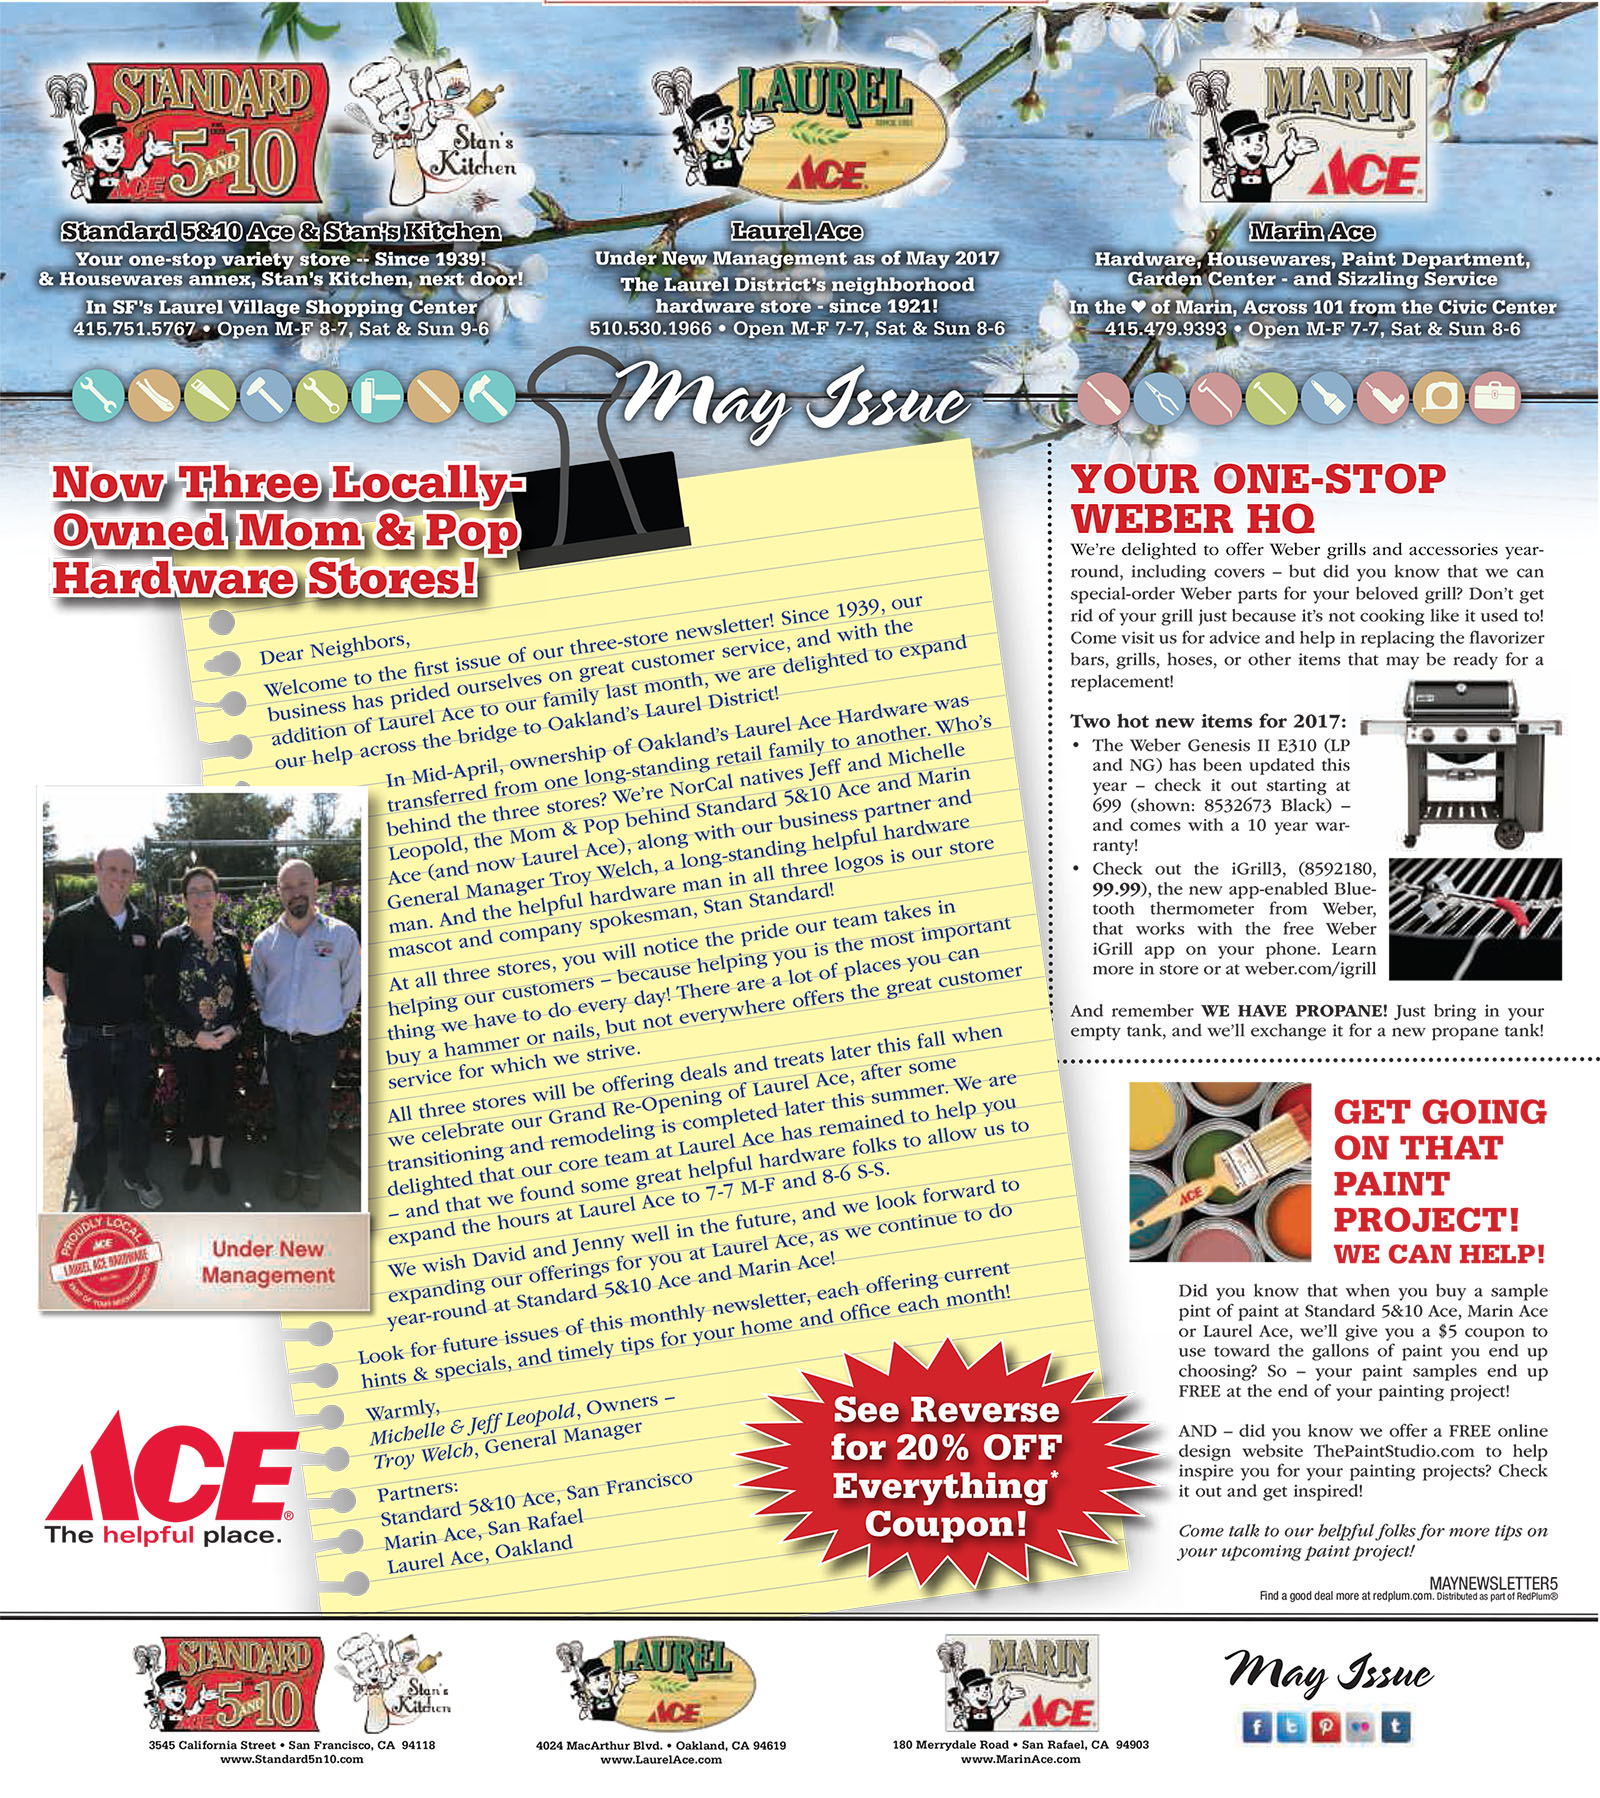 May Standard 5n10 -Marin Ace - Laurel Ace Newsletter